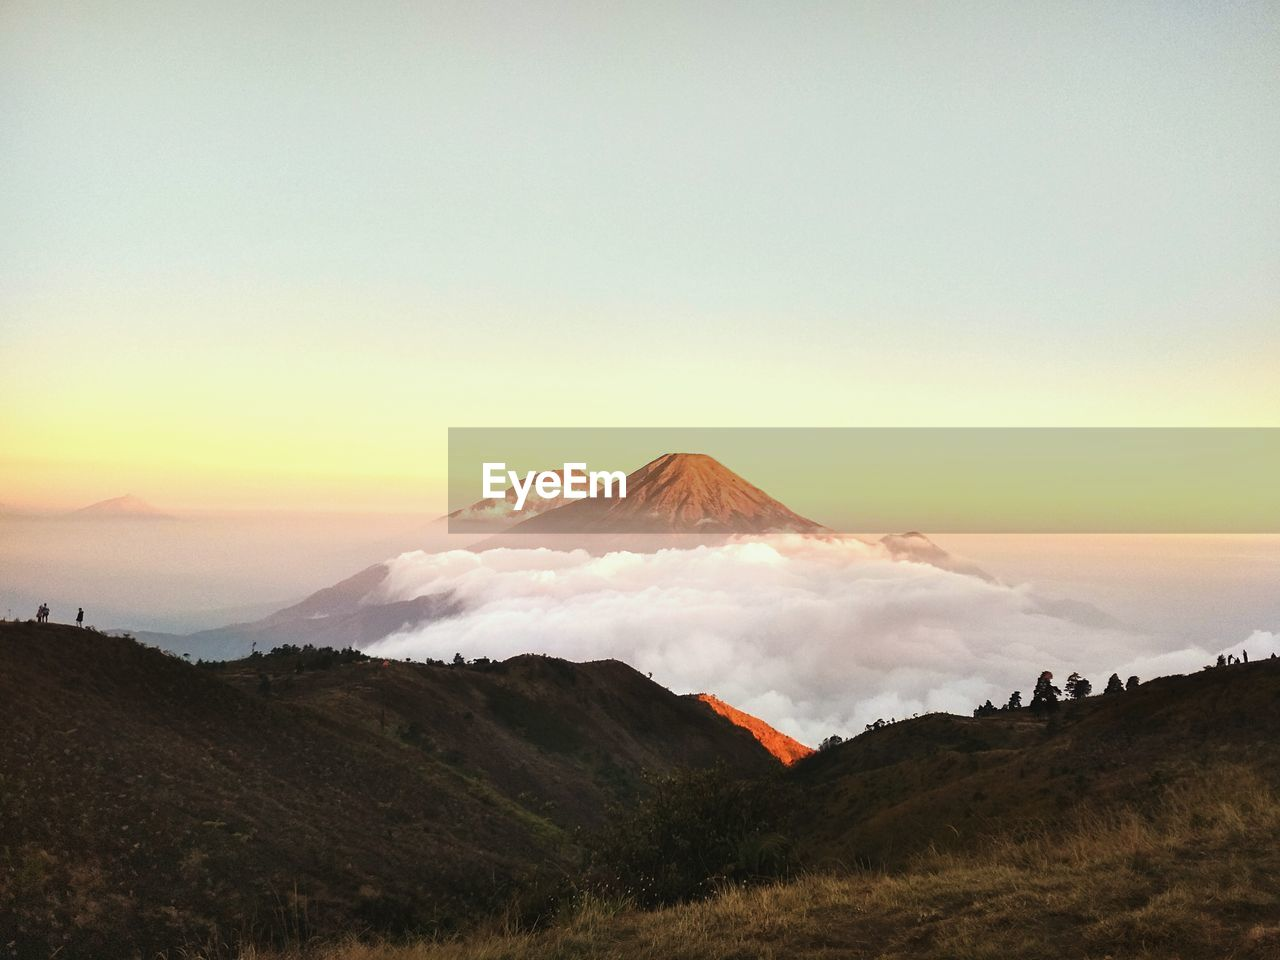 VIEW OF VOLCANIC MOUNTAIN AGAINST SKY DURING SUNSET